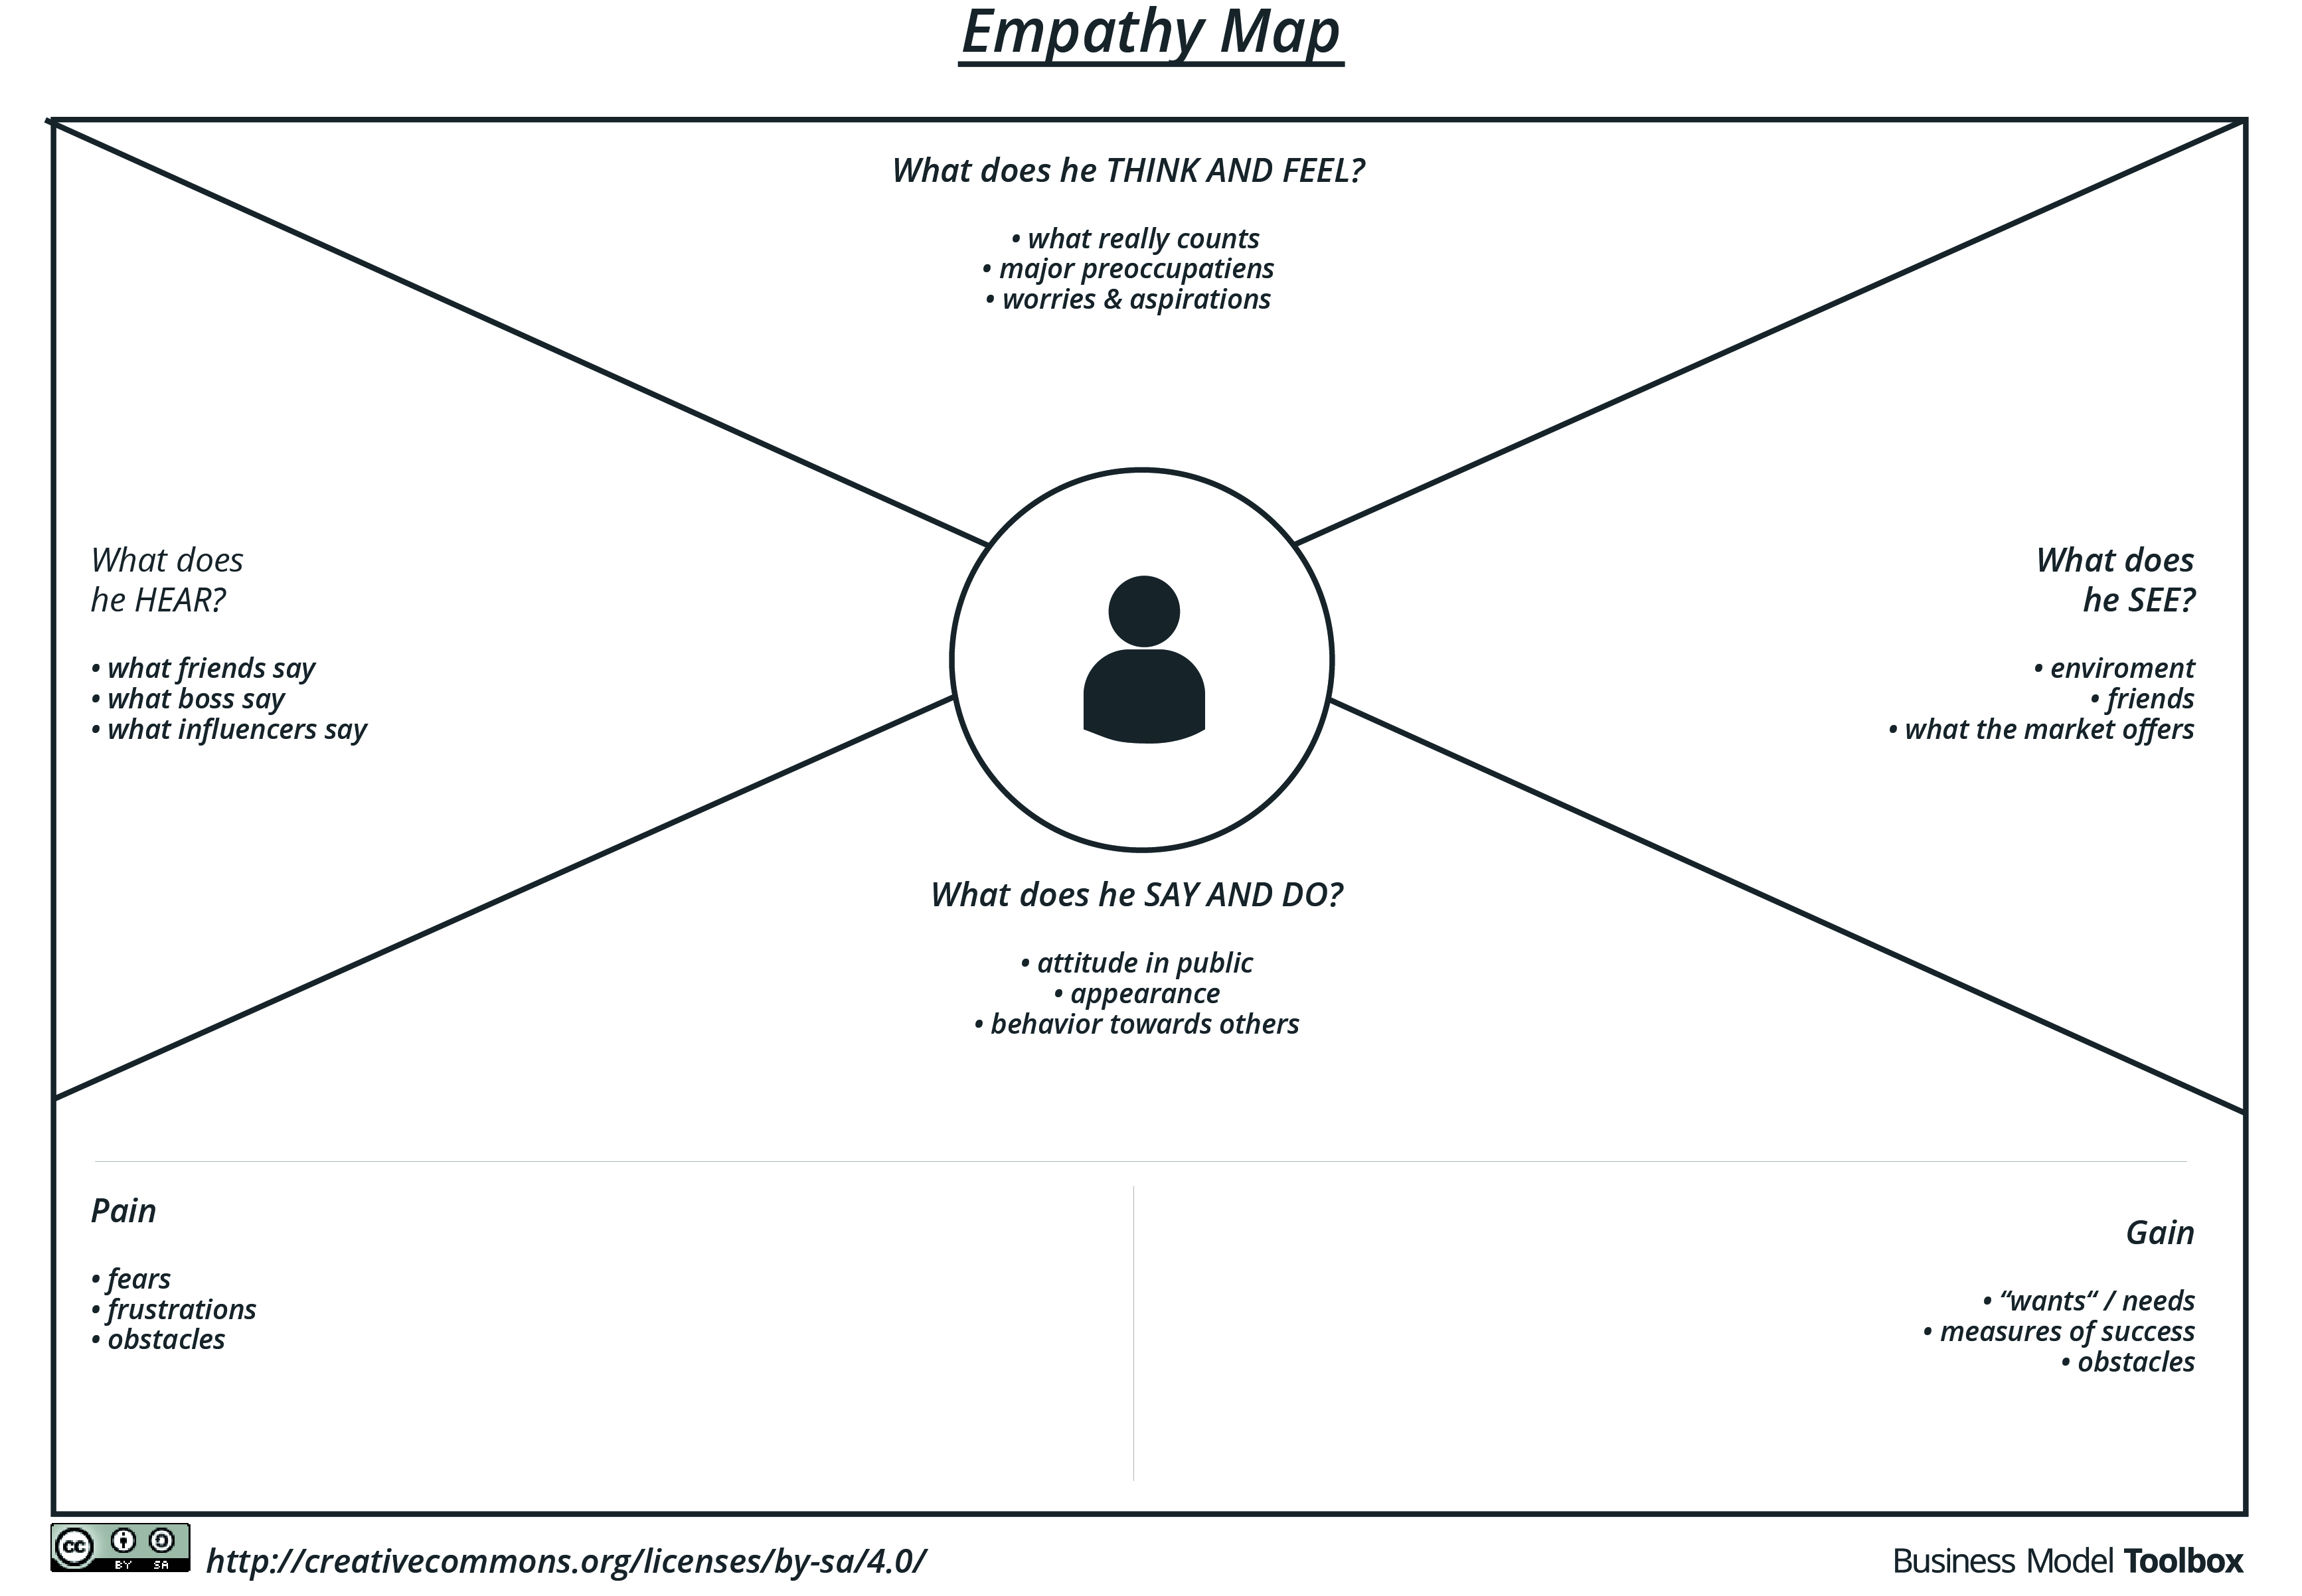 Empathy map template word gallery templates design ideas empathy map template gallery templates design ideas empathy map business model toolbox download template pronofoot35fo gallery pronofoot35fo Image collections